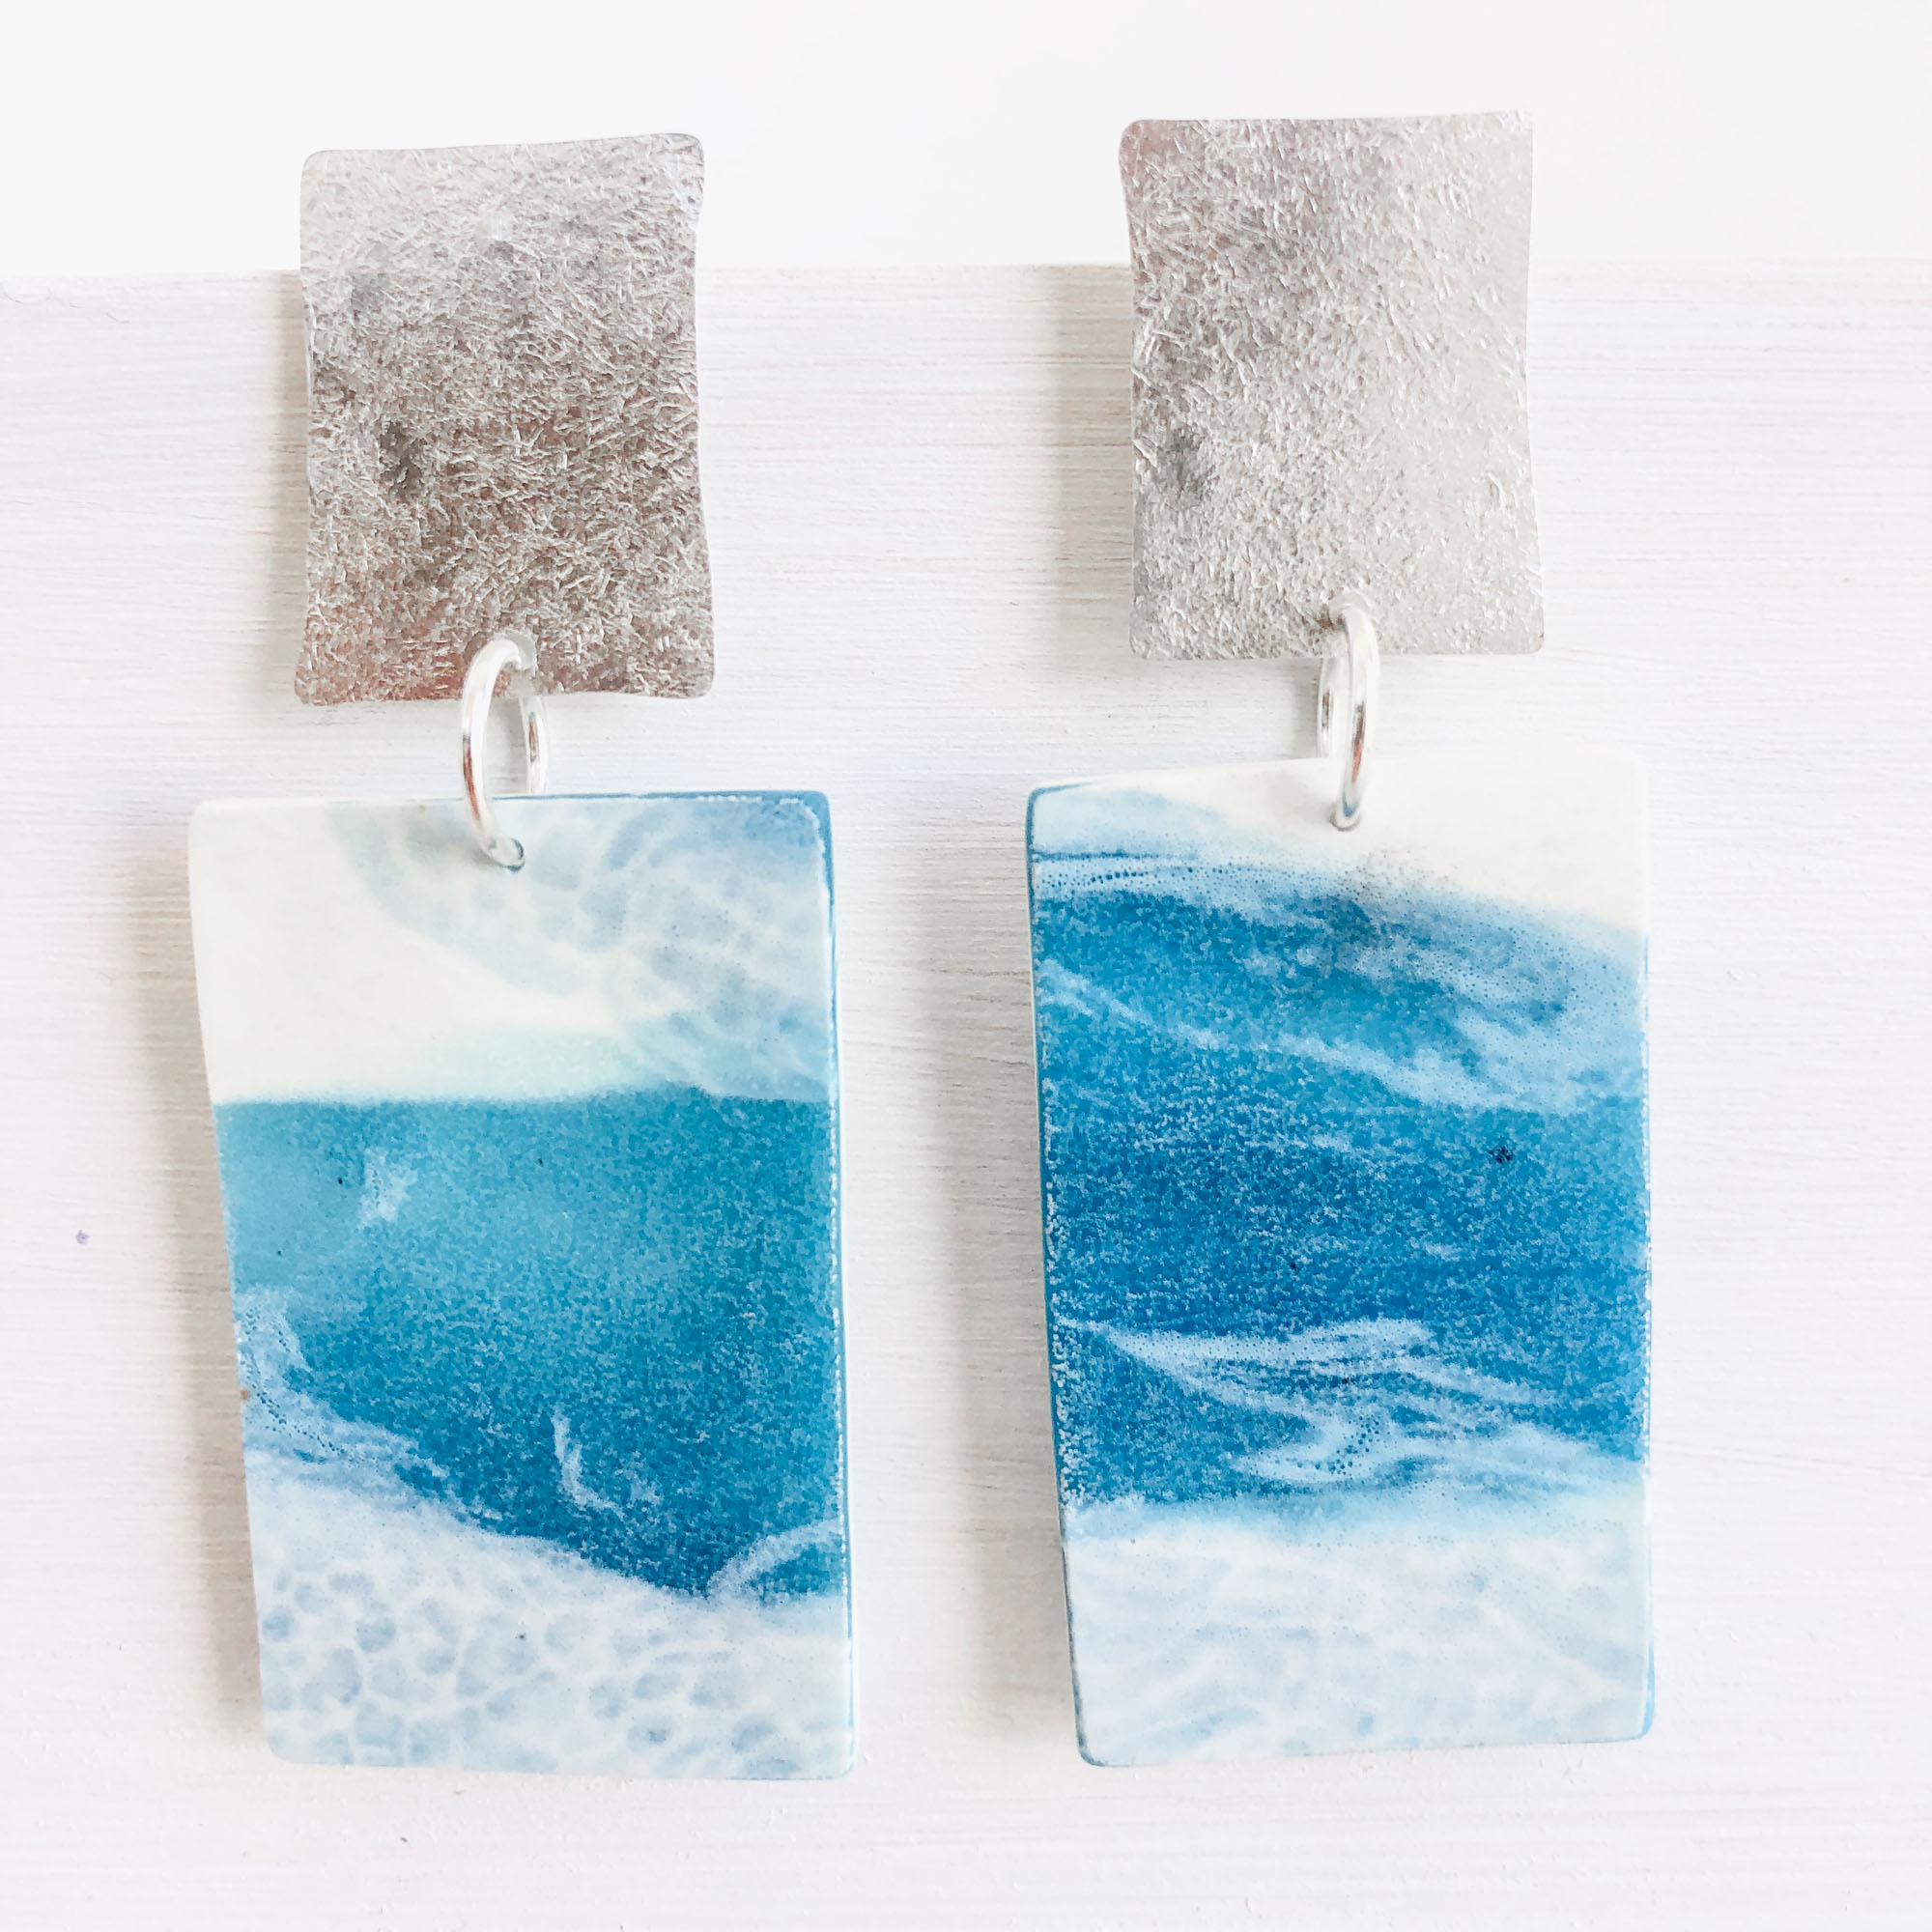 light and bright  resin earrings - • ocean colours • matt finish• drop length approx. 7 am• resin • hammered sterling silver• red2• 70 euro